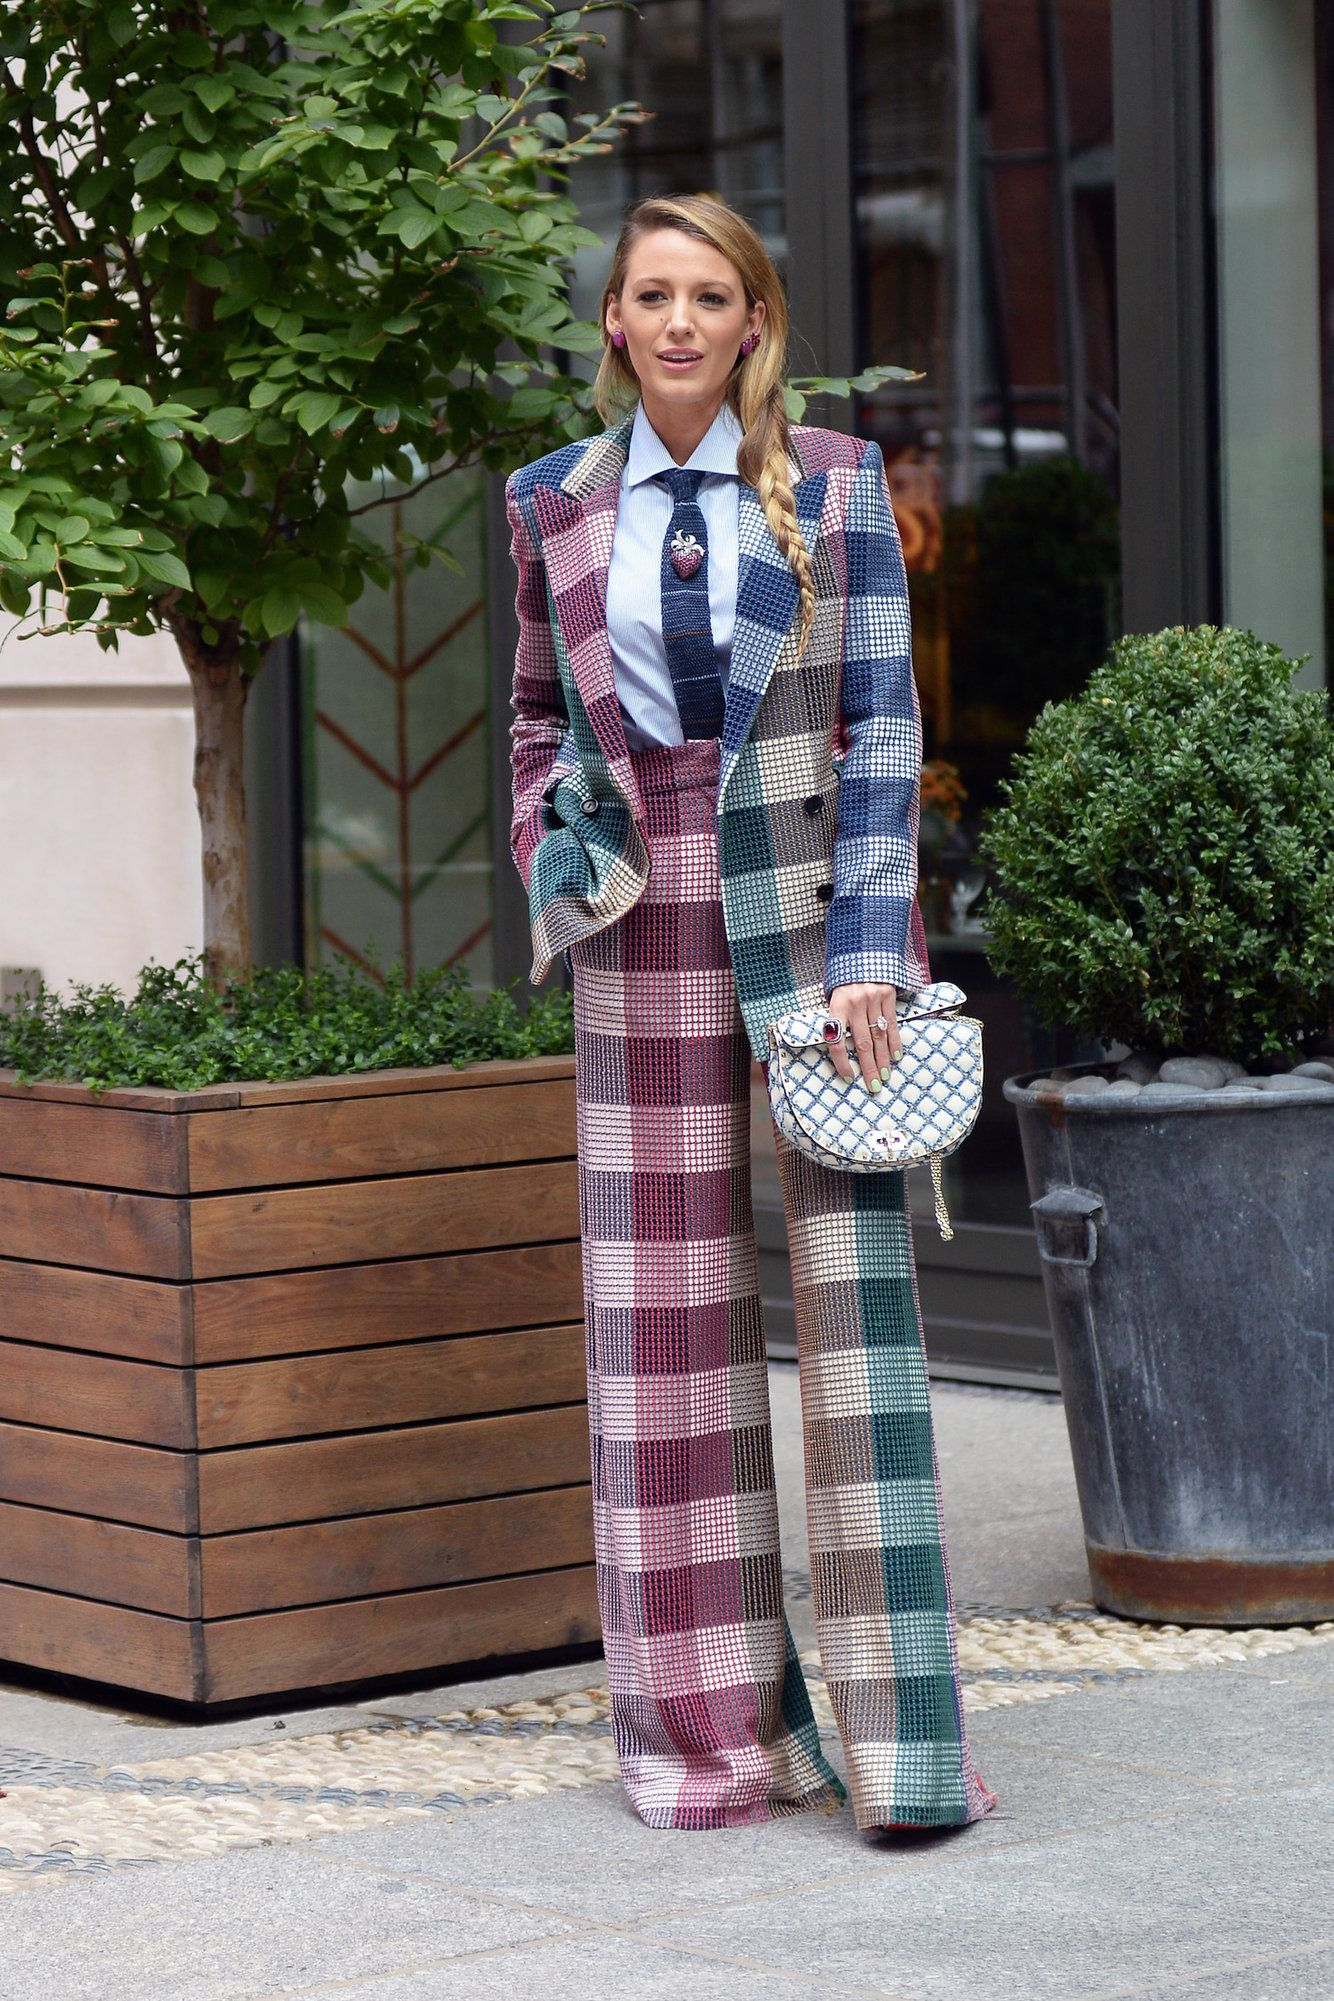 A fan told Blake Lively to fire her stylist when she stepped out in a checkered 'tablecloth' pantsuit — and she had the best response | Fashion, Spring outfits casual, Blake lively